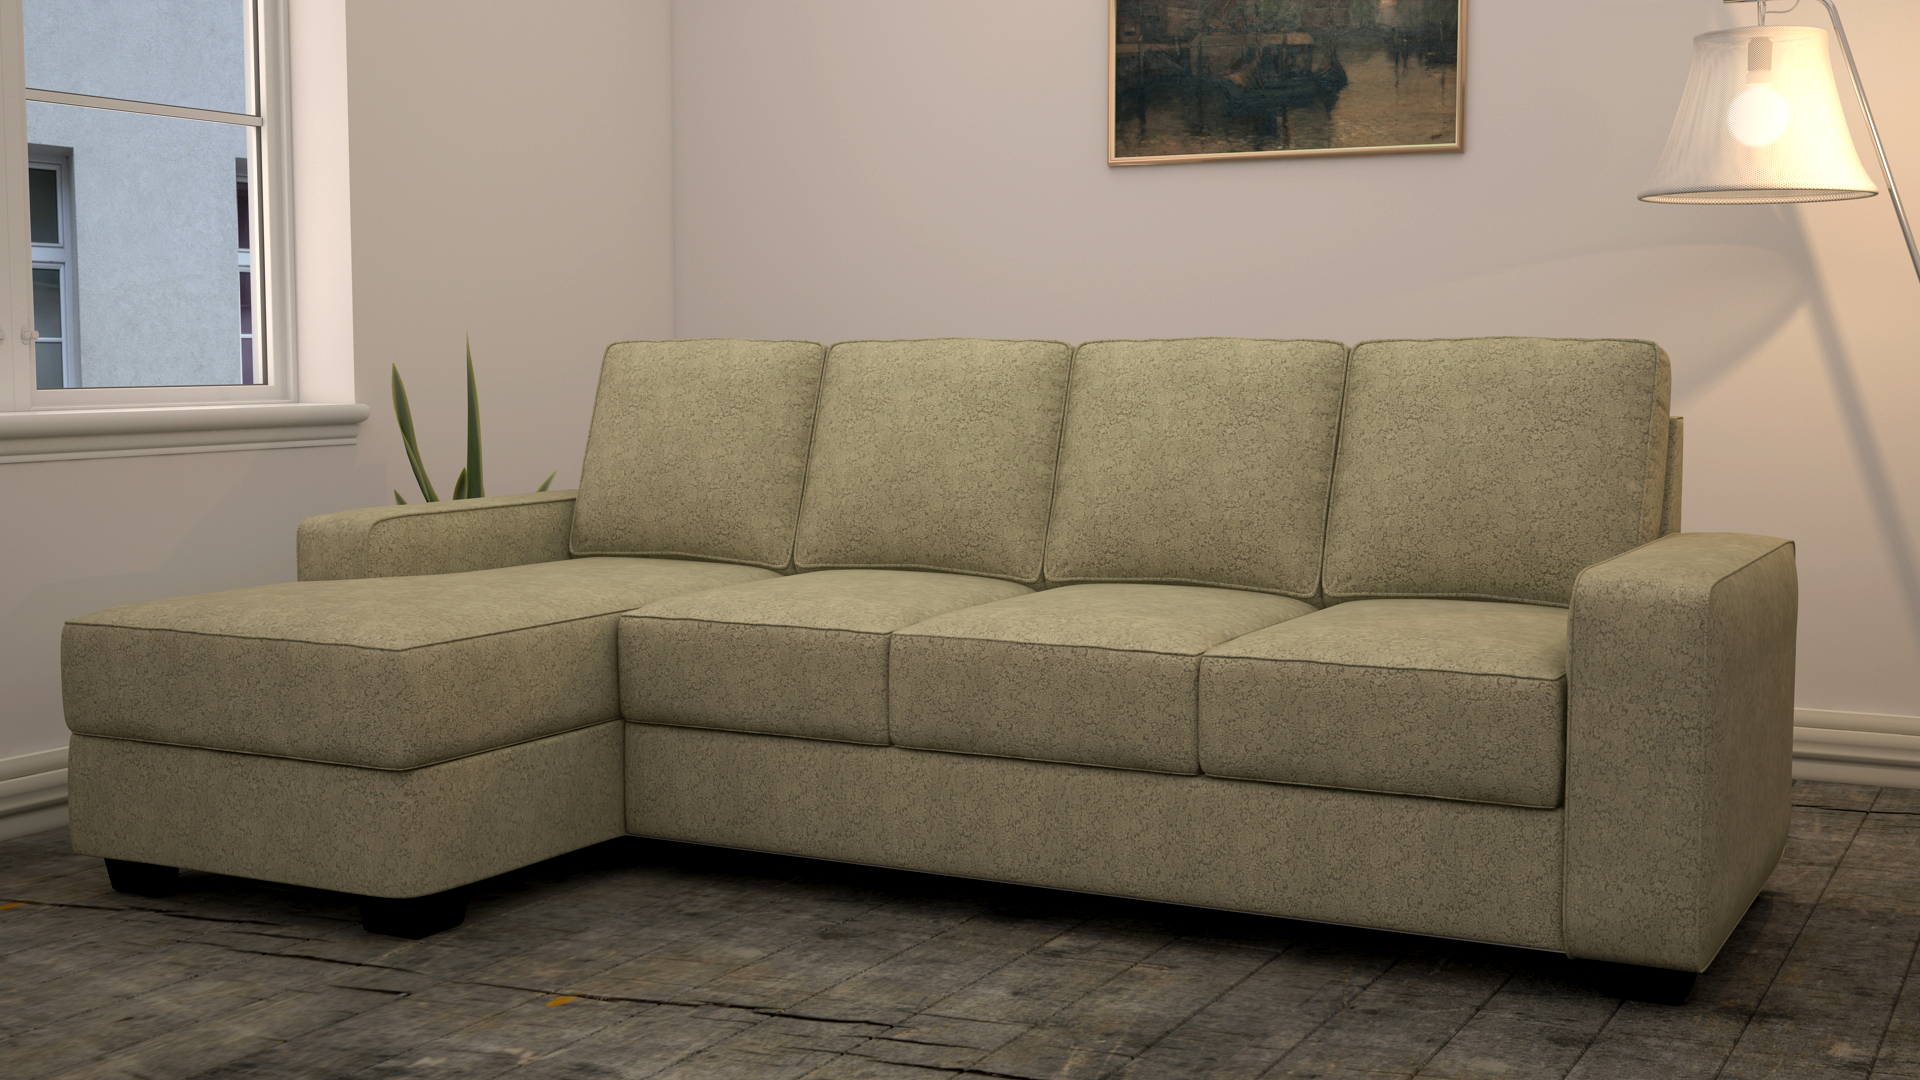 Lounger Sofa Designs Online - Lounger sofa designs